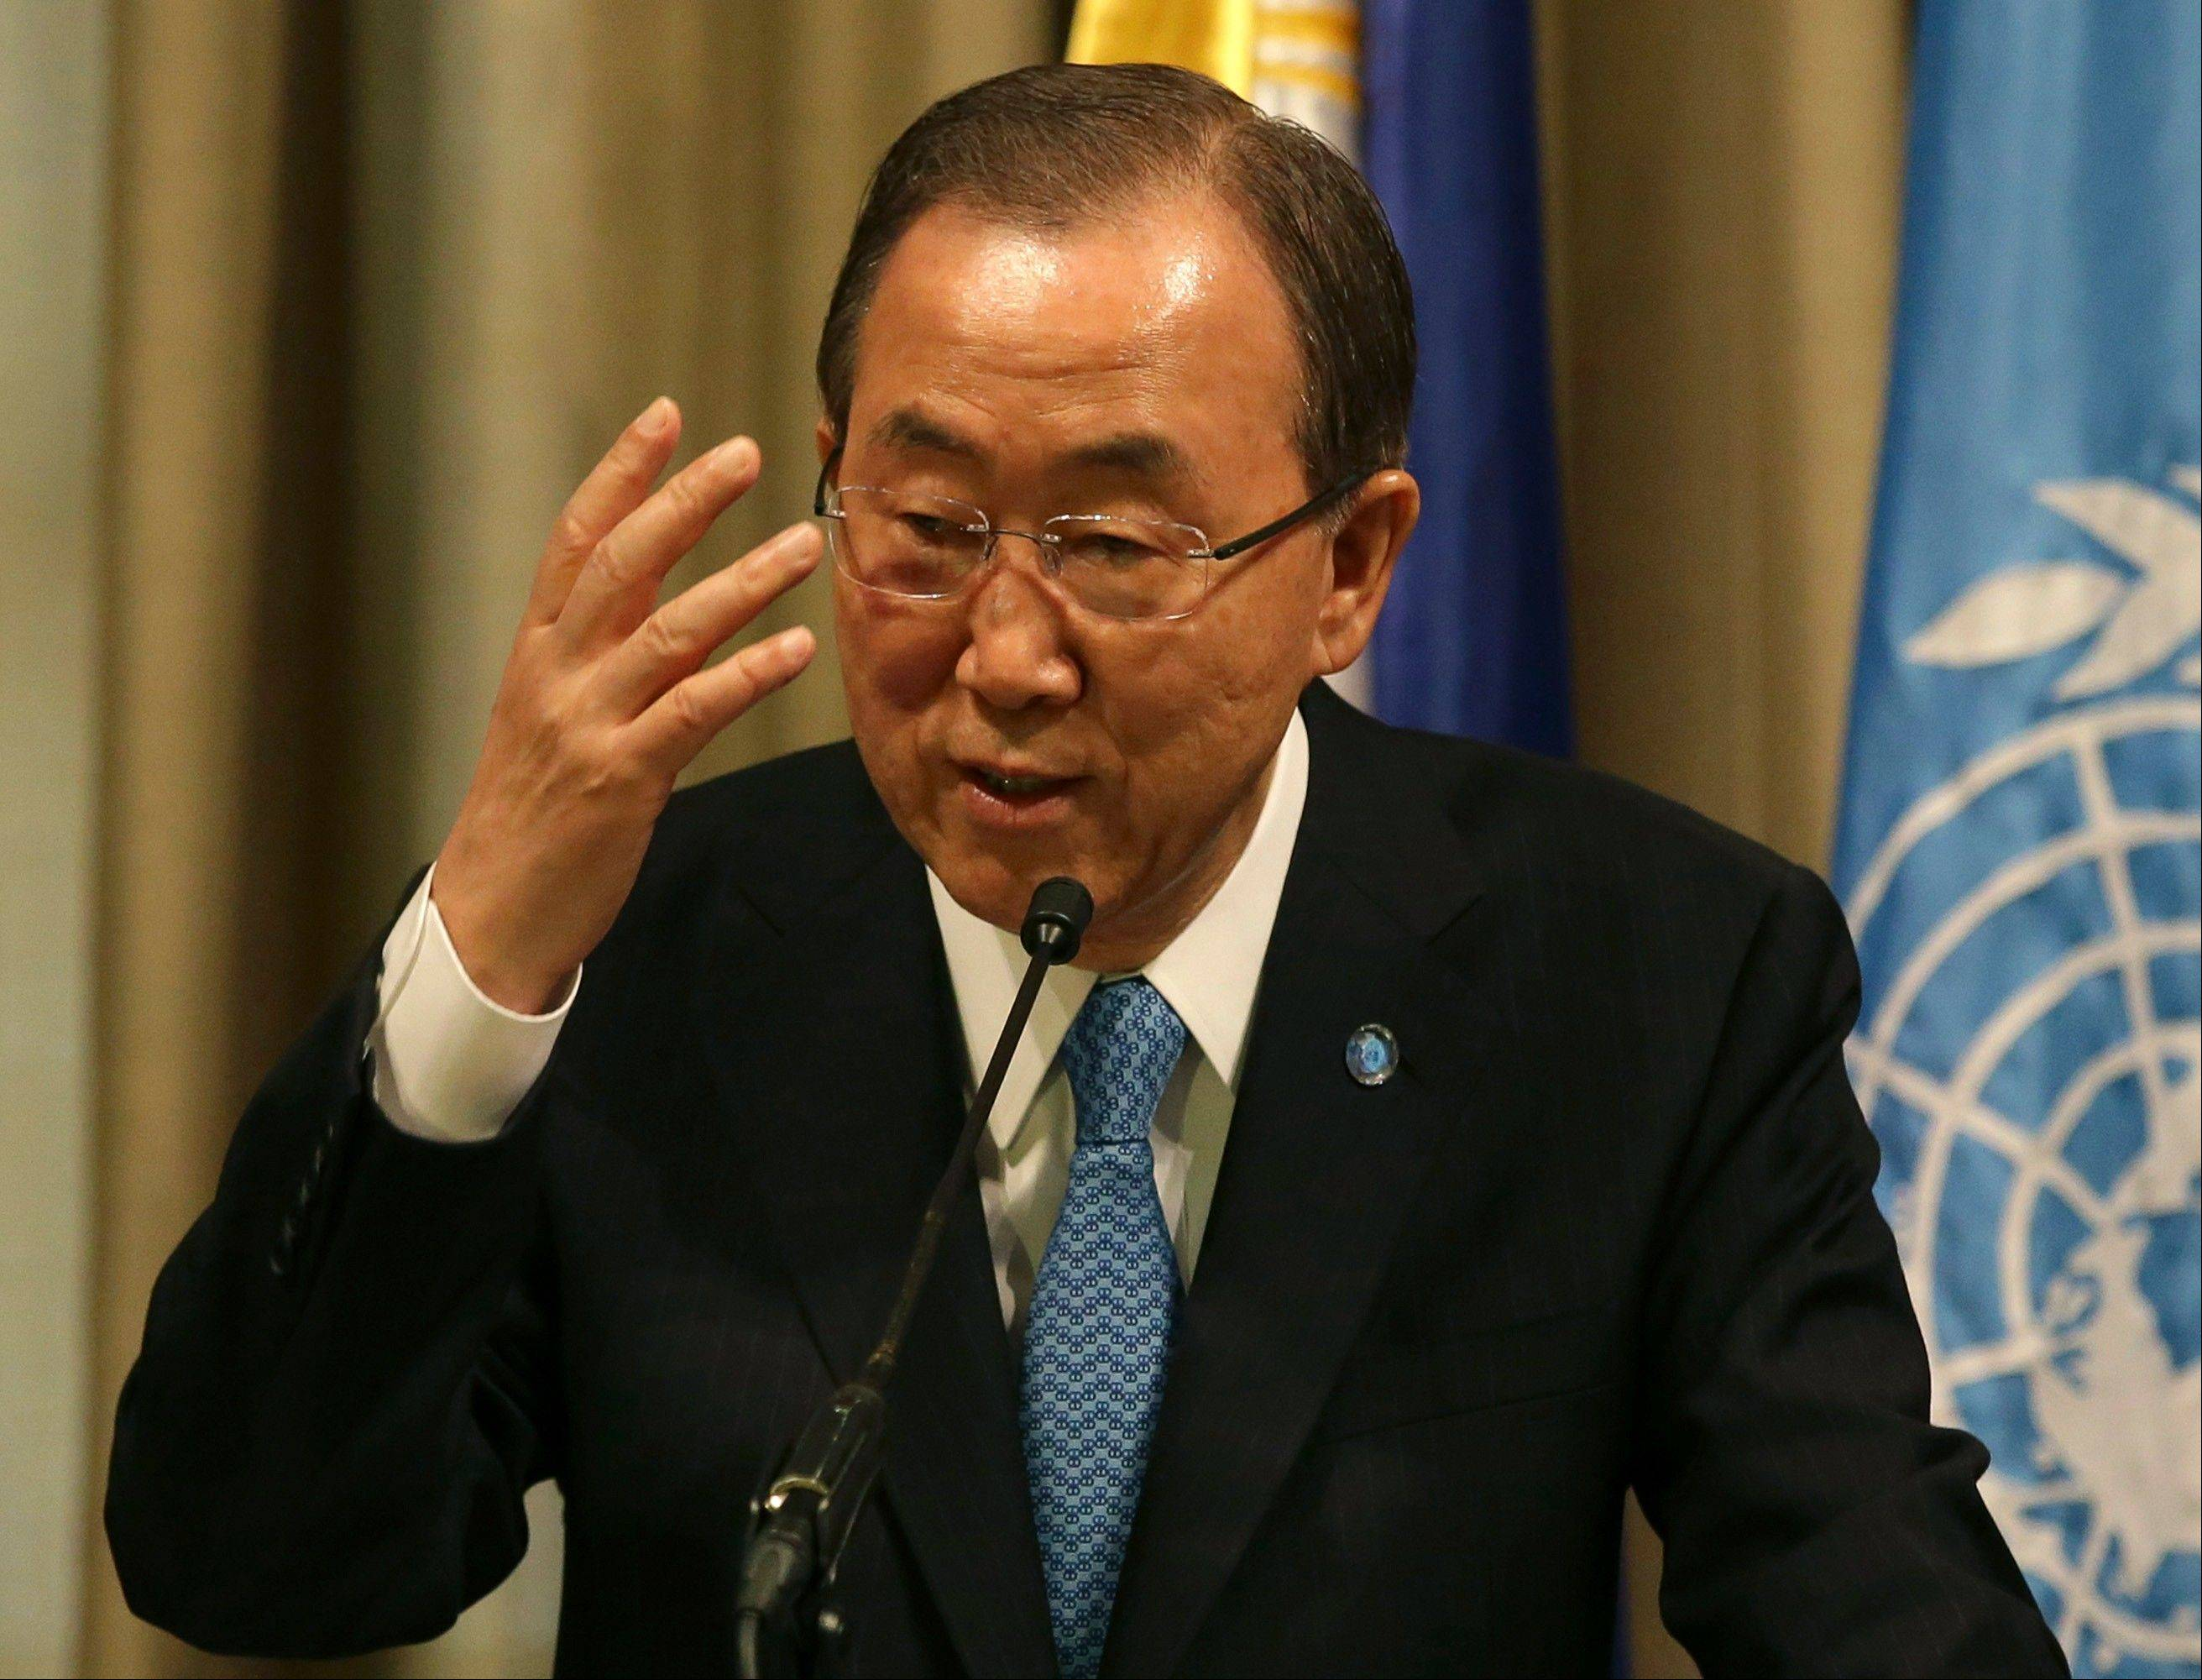 U.N. Secretary-General Ban Ki-moon, at a press conference in Makati, south of Manila, Philippines, Sunday, expressed grave concern about the deteriorating security situation in South Sudan and demanded an end to violence there.